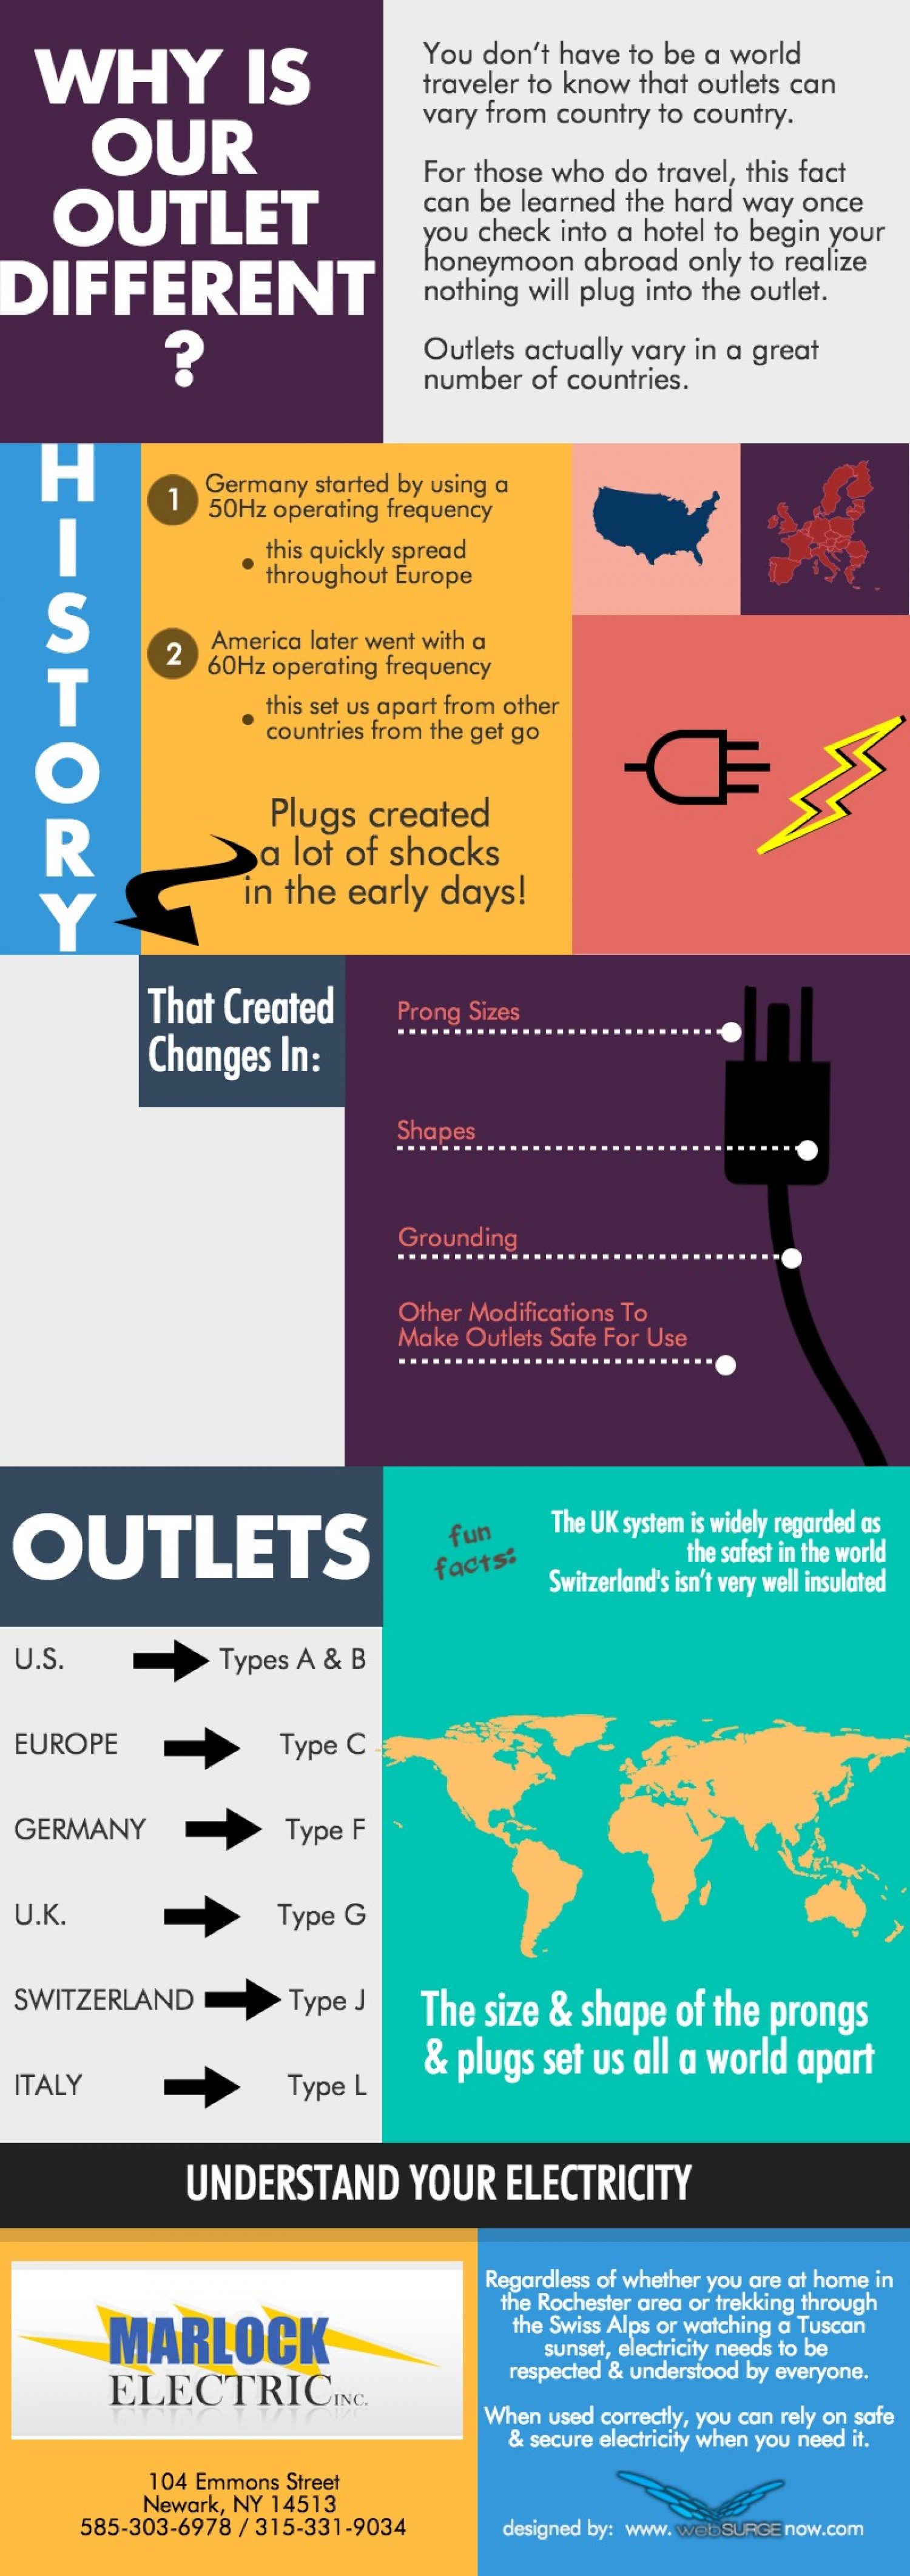 Why is Our Outlet Different? Infographic